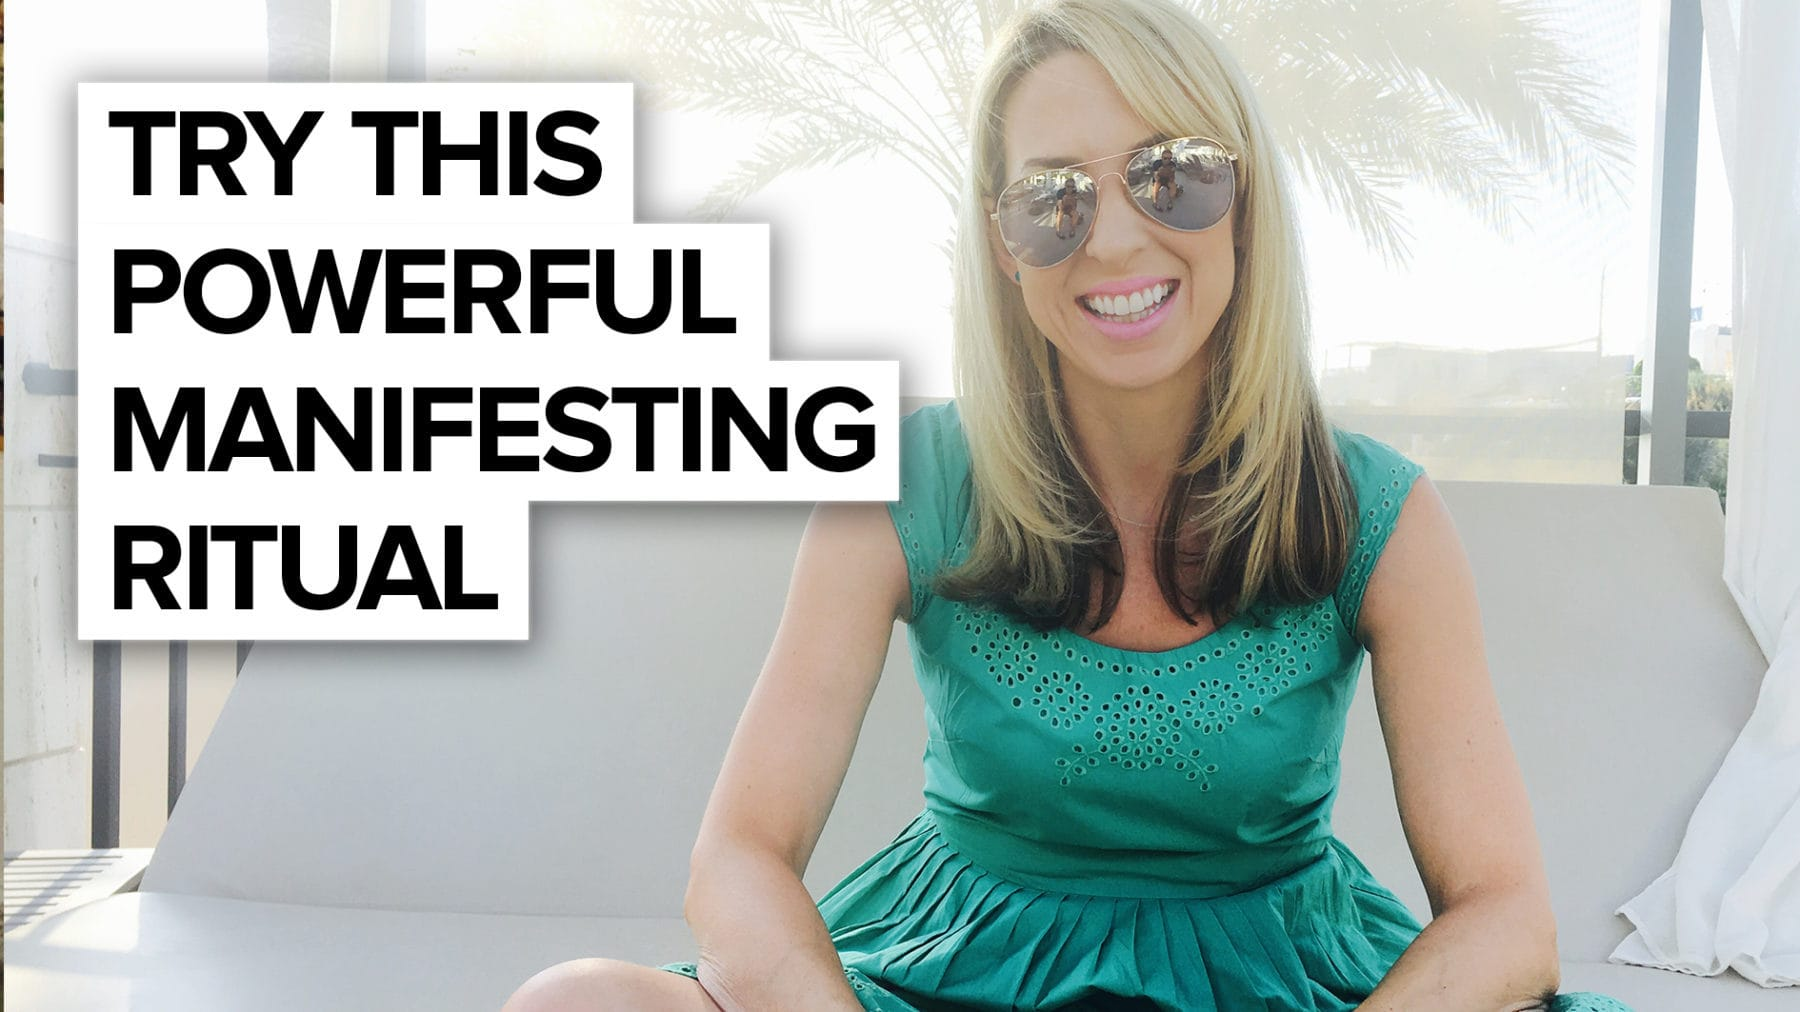 Try this powerful manifesting ritual!